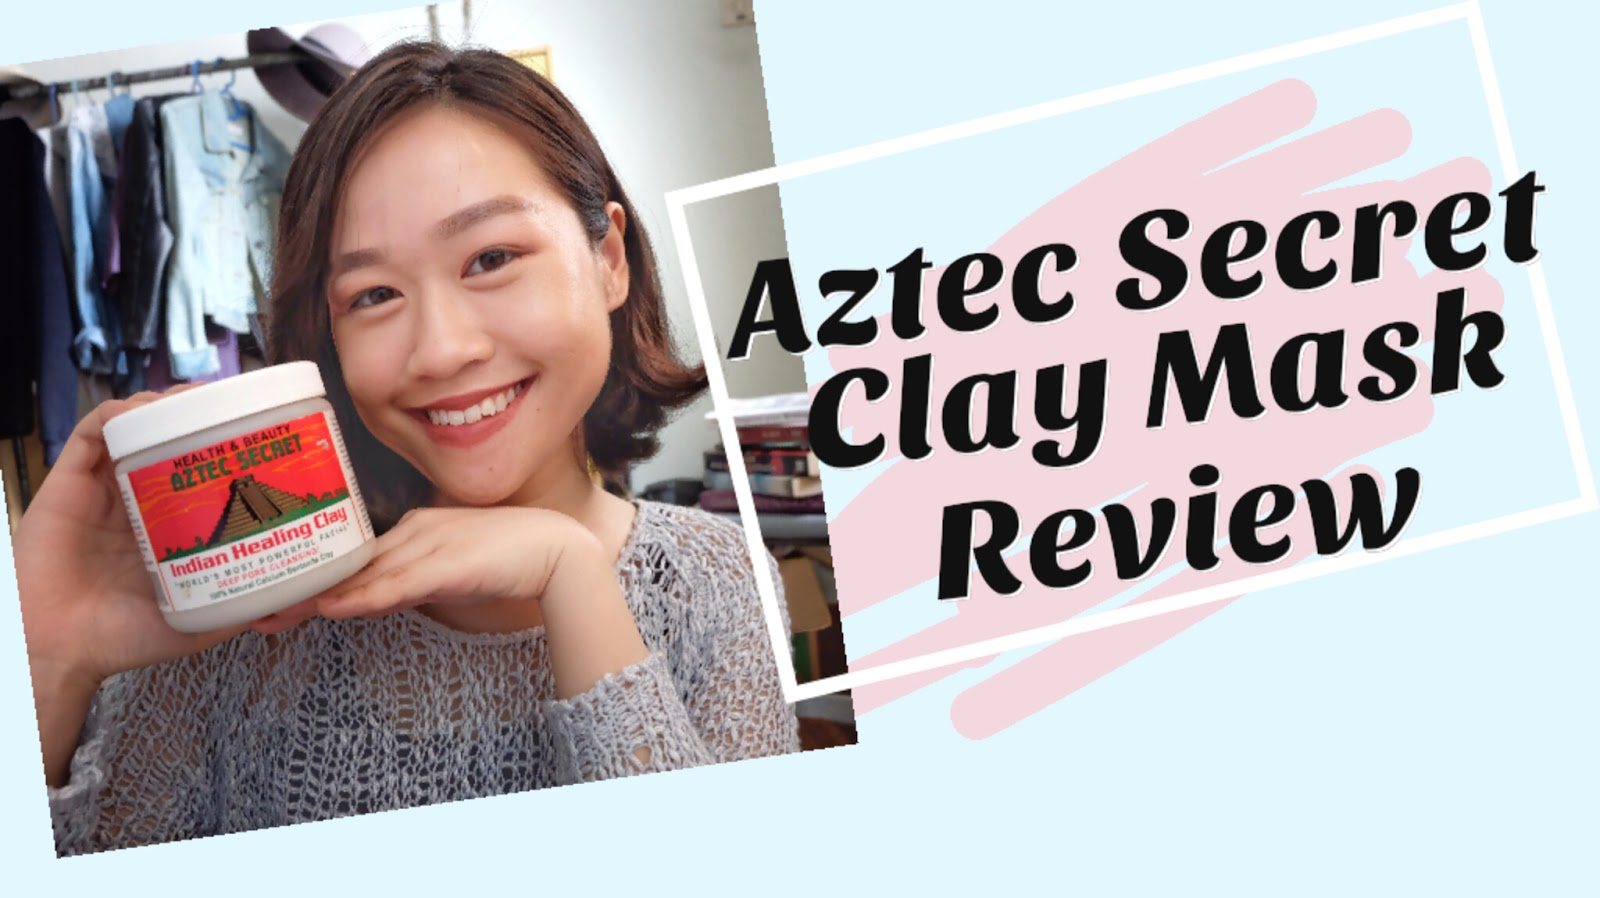 I finally tried the Aztec Secret Indian Healing Clay Mask